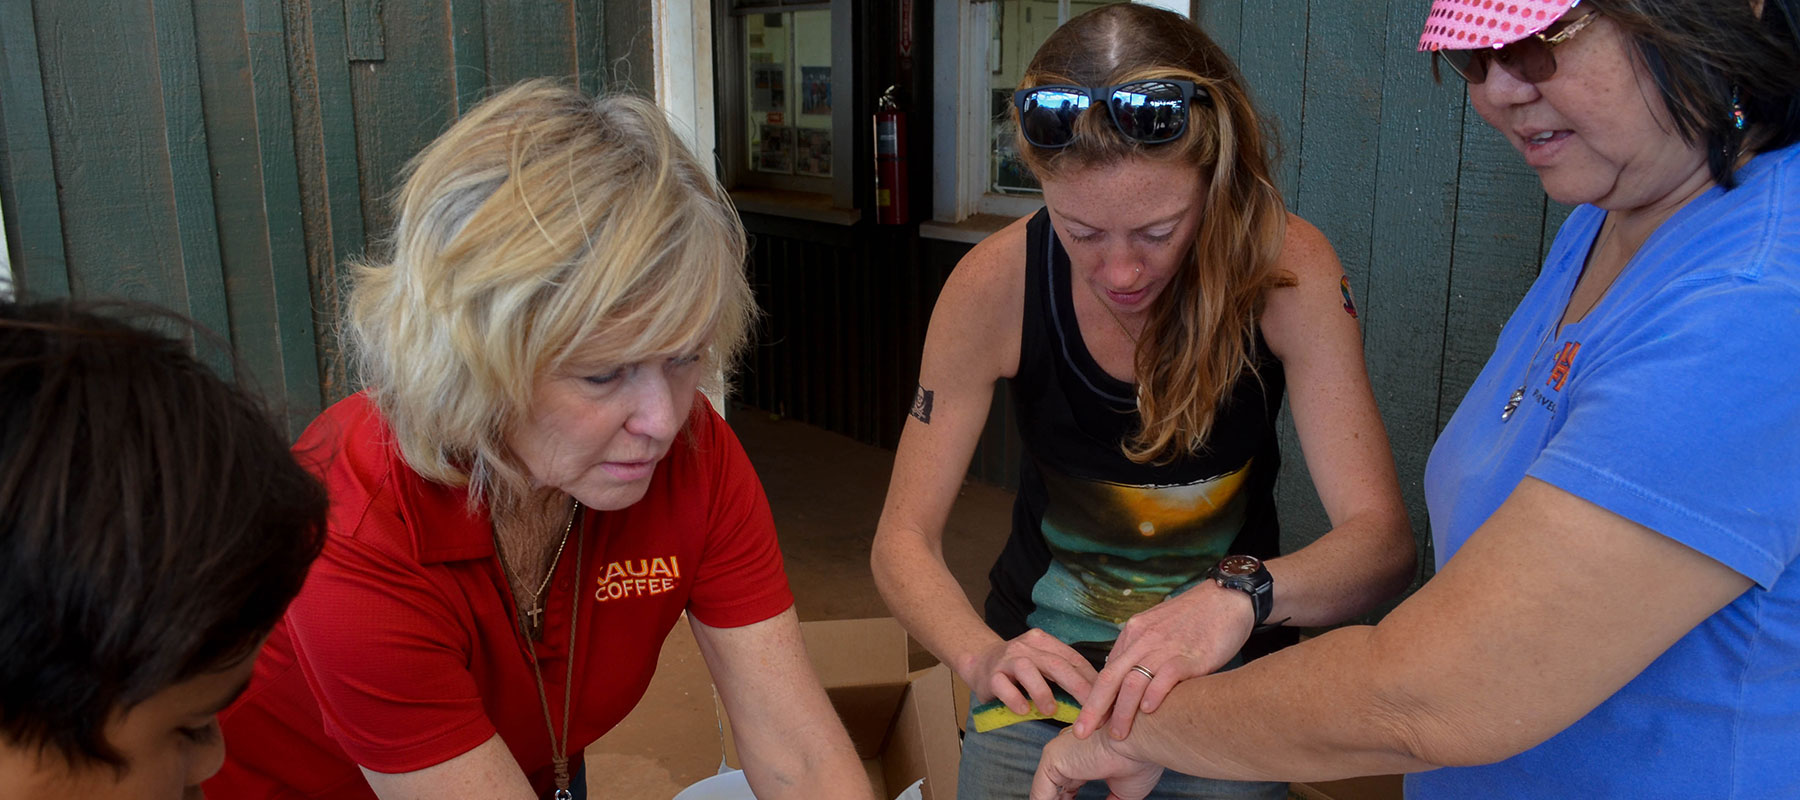 kauai coffee staff place temporary tattoos on each other during the Pau Harvest celebration